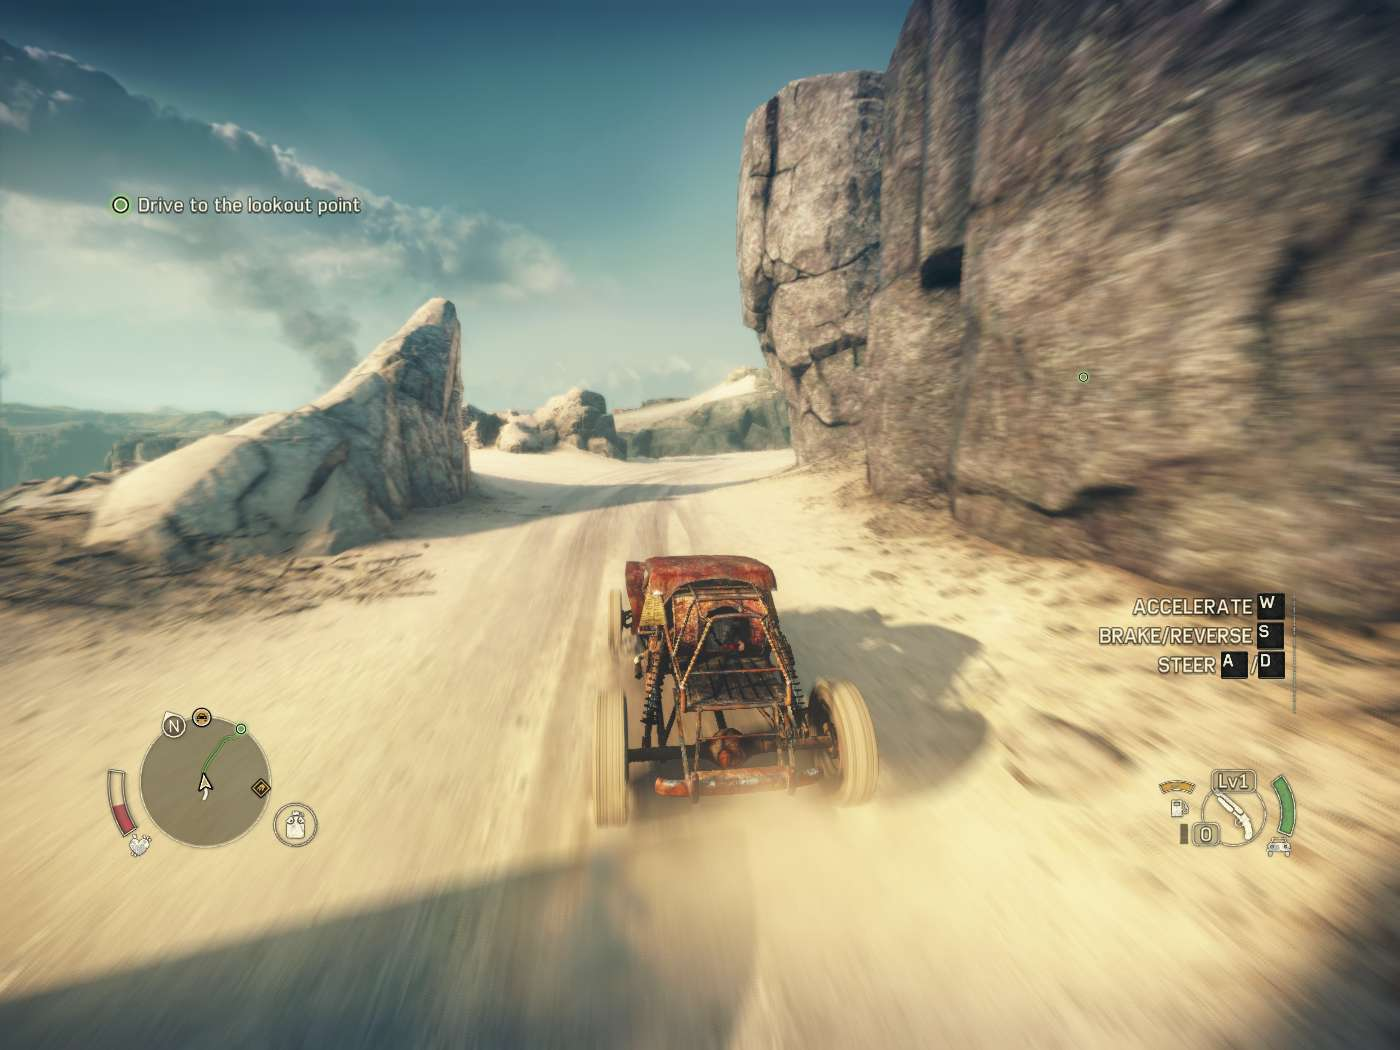 download setup of mad max game for desktop or laptop in highly compressed